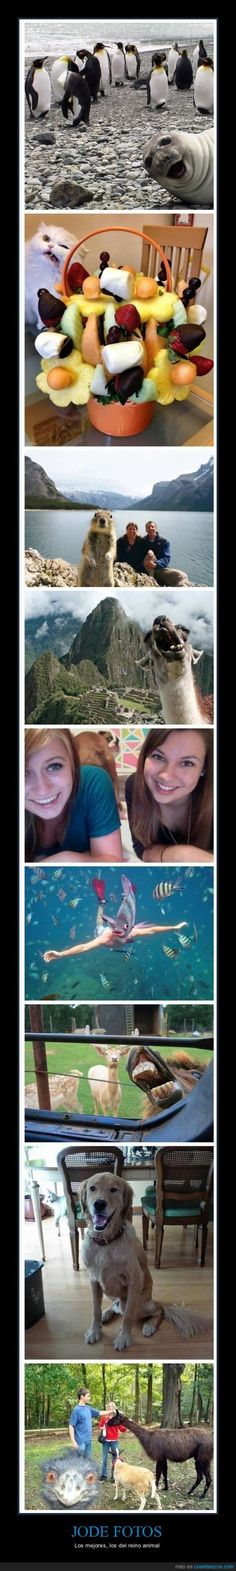 Animals make pictures funny too xD